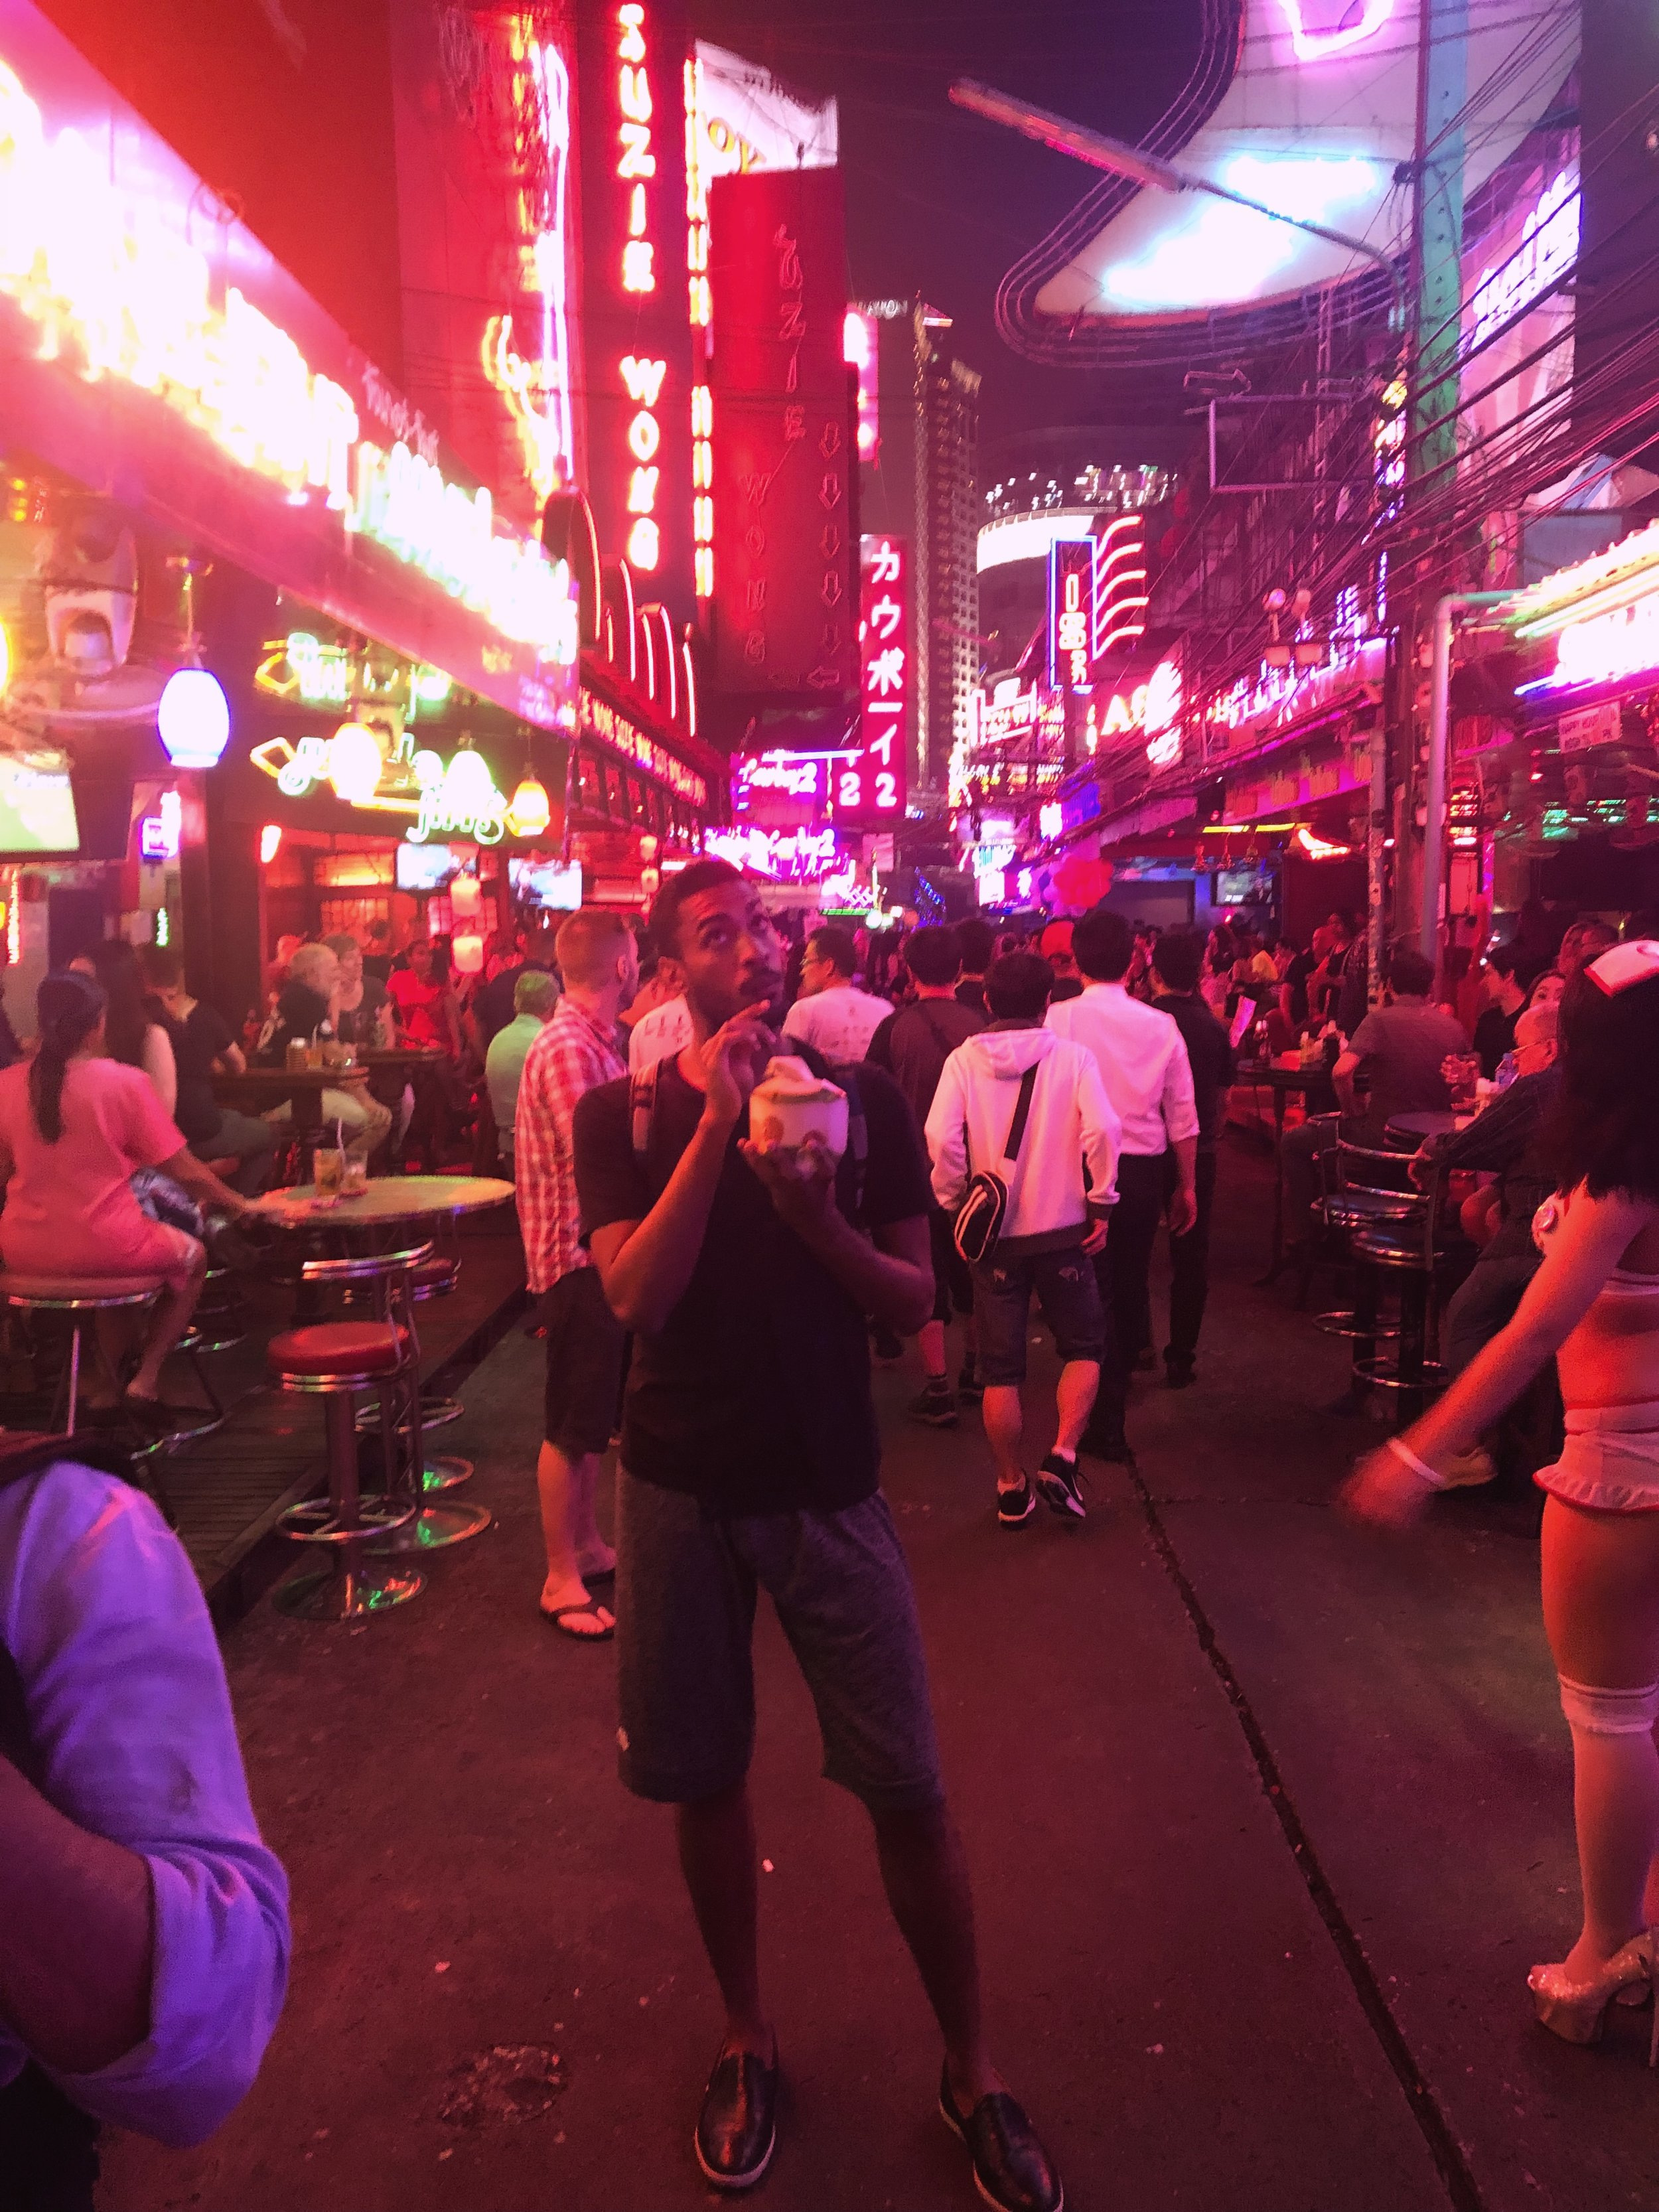 Minding my business in one of Bangkok's red light districts.